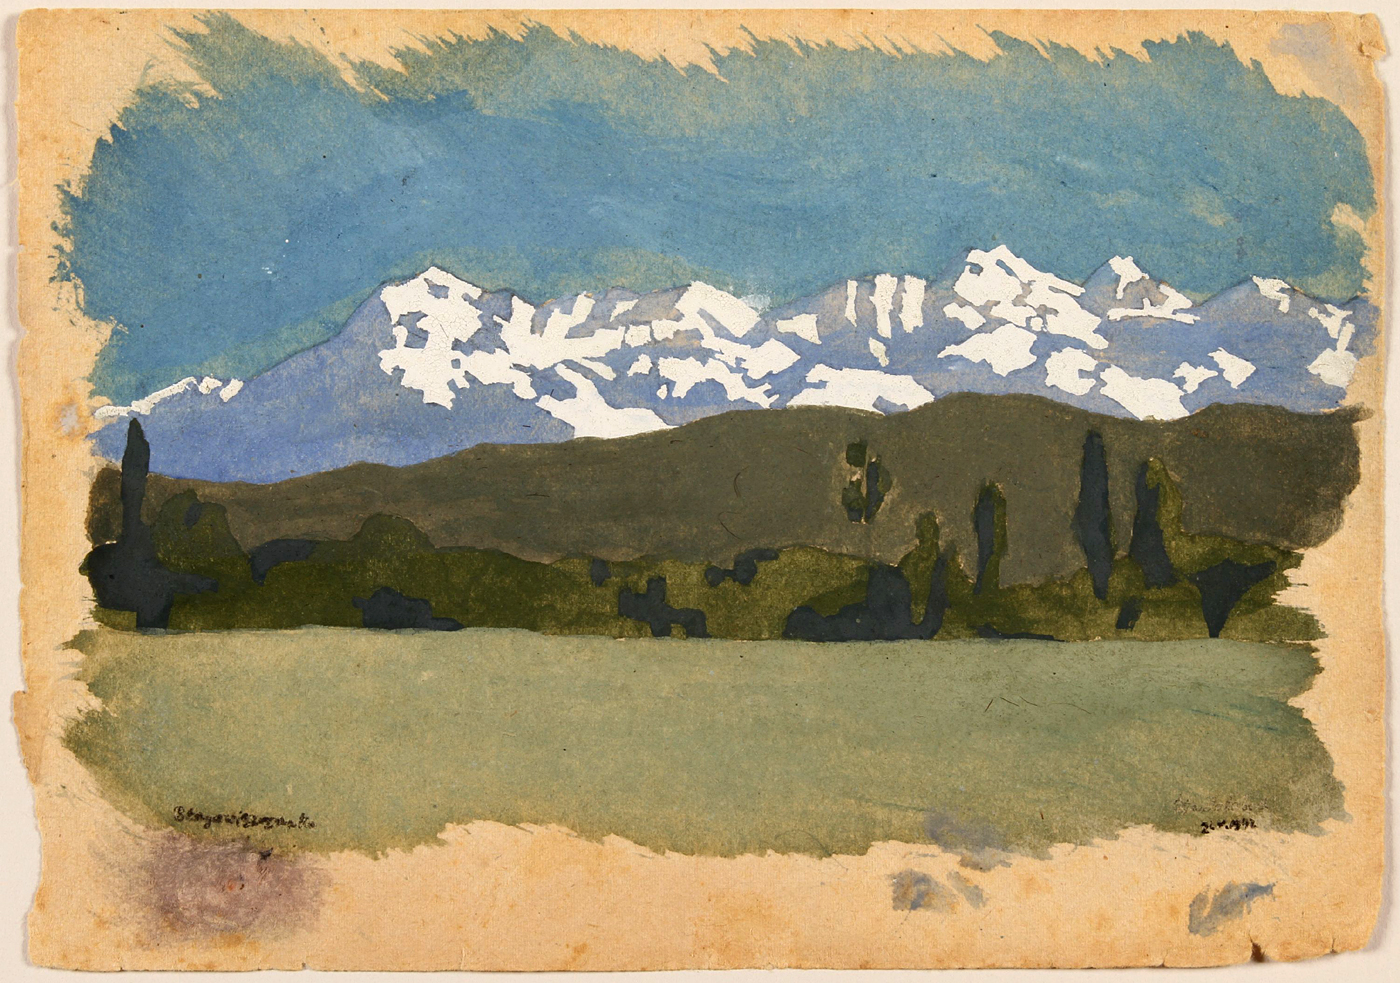 Mountains watercolour, Kyrgyzstan, 1942